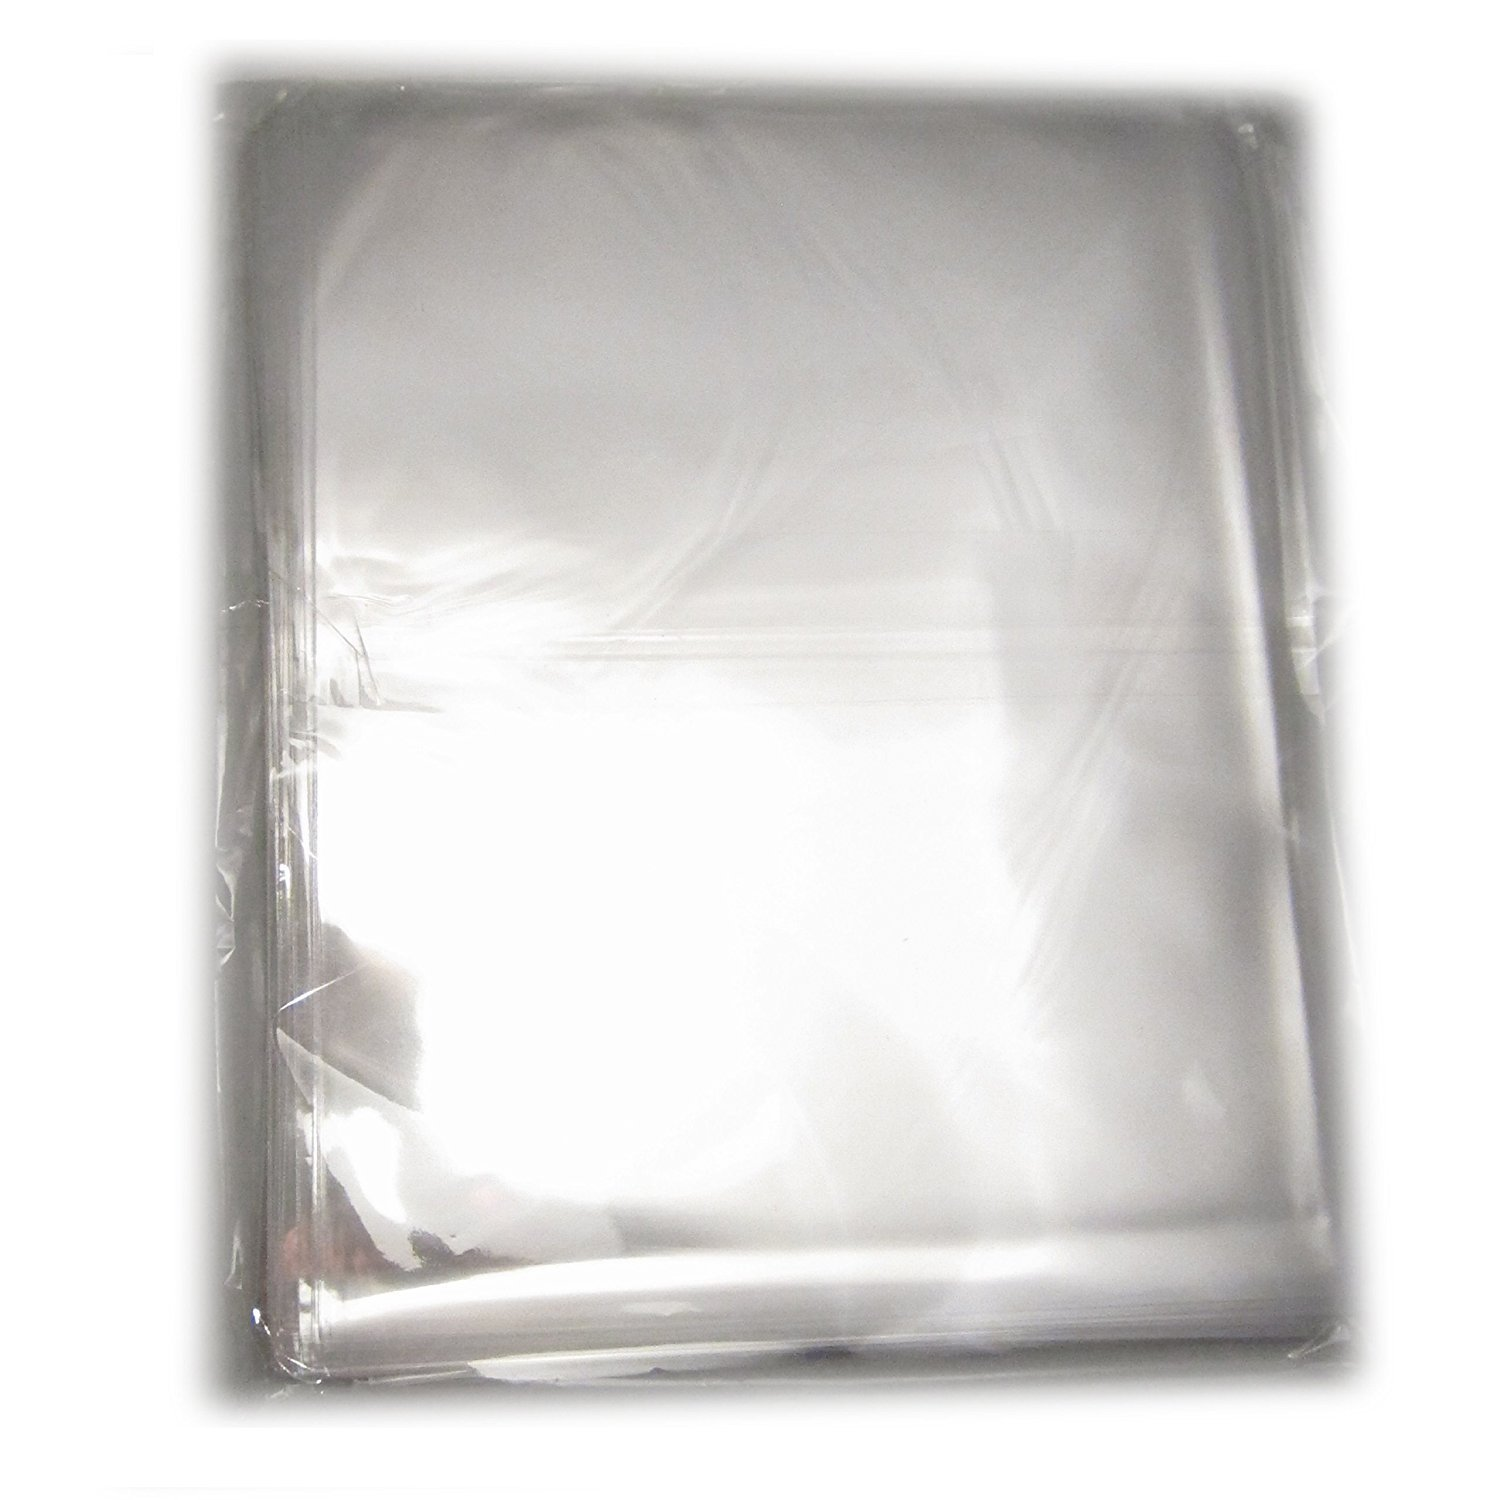 100Pcs 12x16 Clear Cello/Cellophane Bags Treat Bag for Bakery ,Cookie, Candies, Party Favors mollensiuer